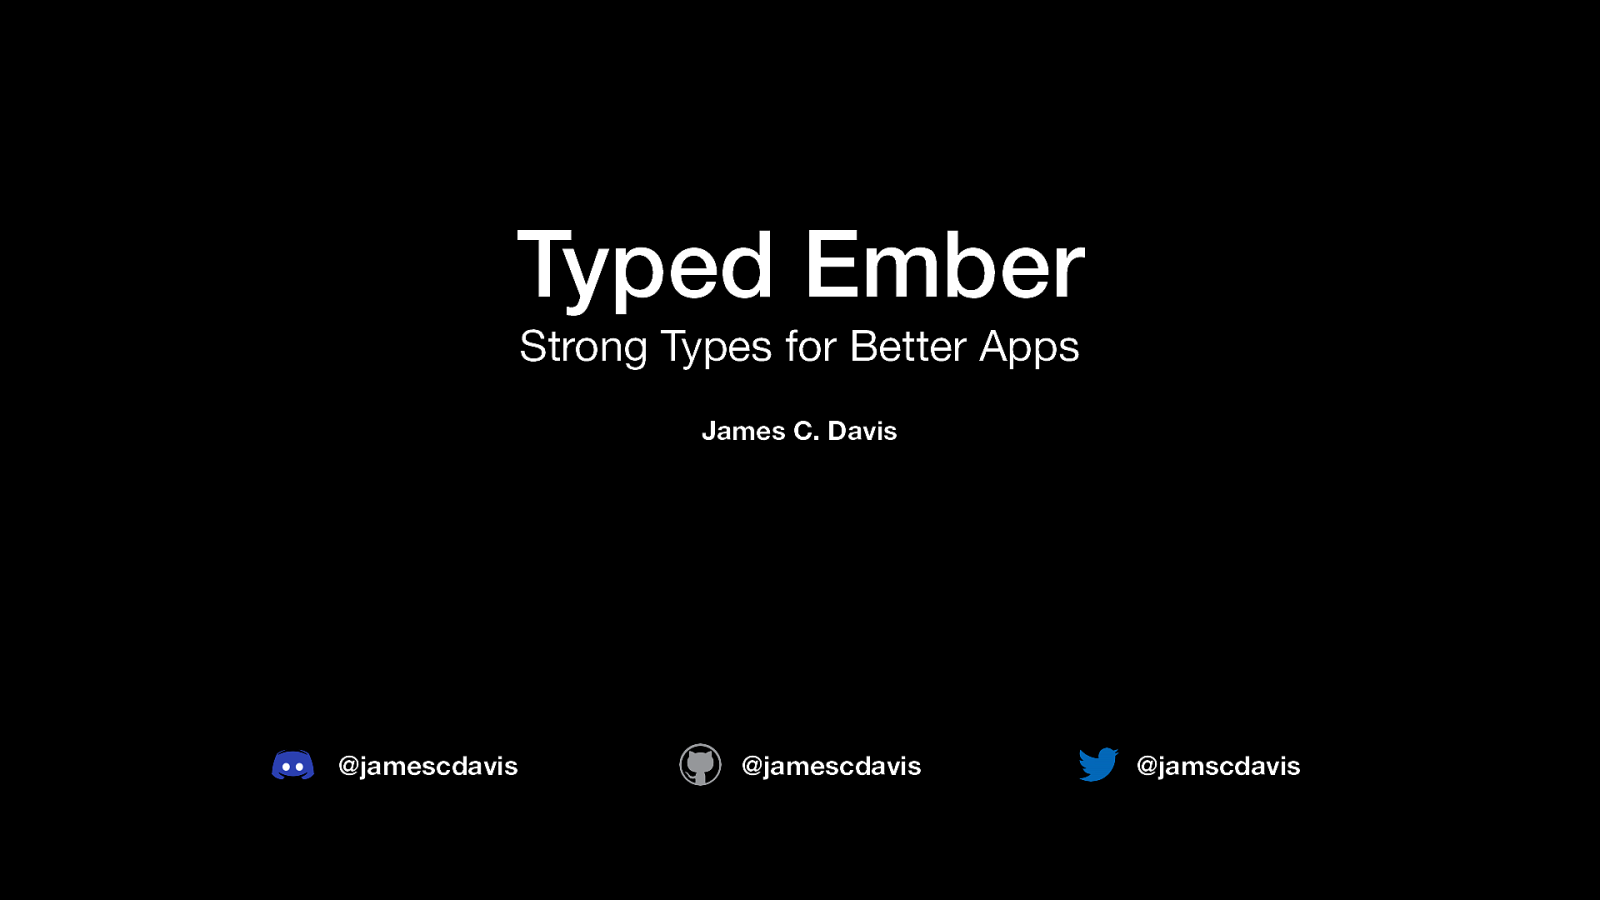 Typed Ember: Strong Types for Better Apps